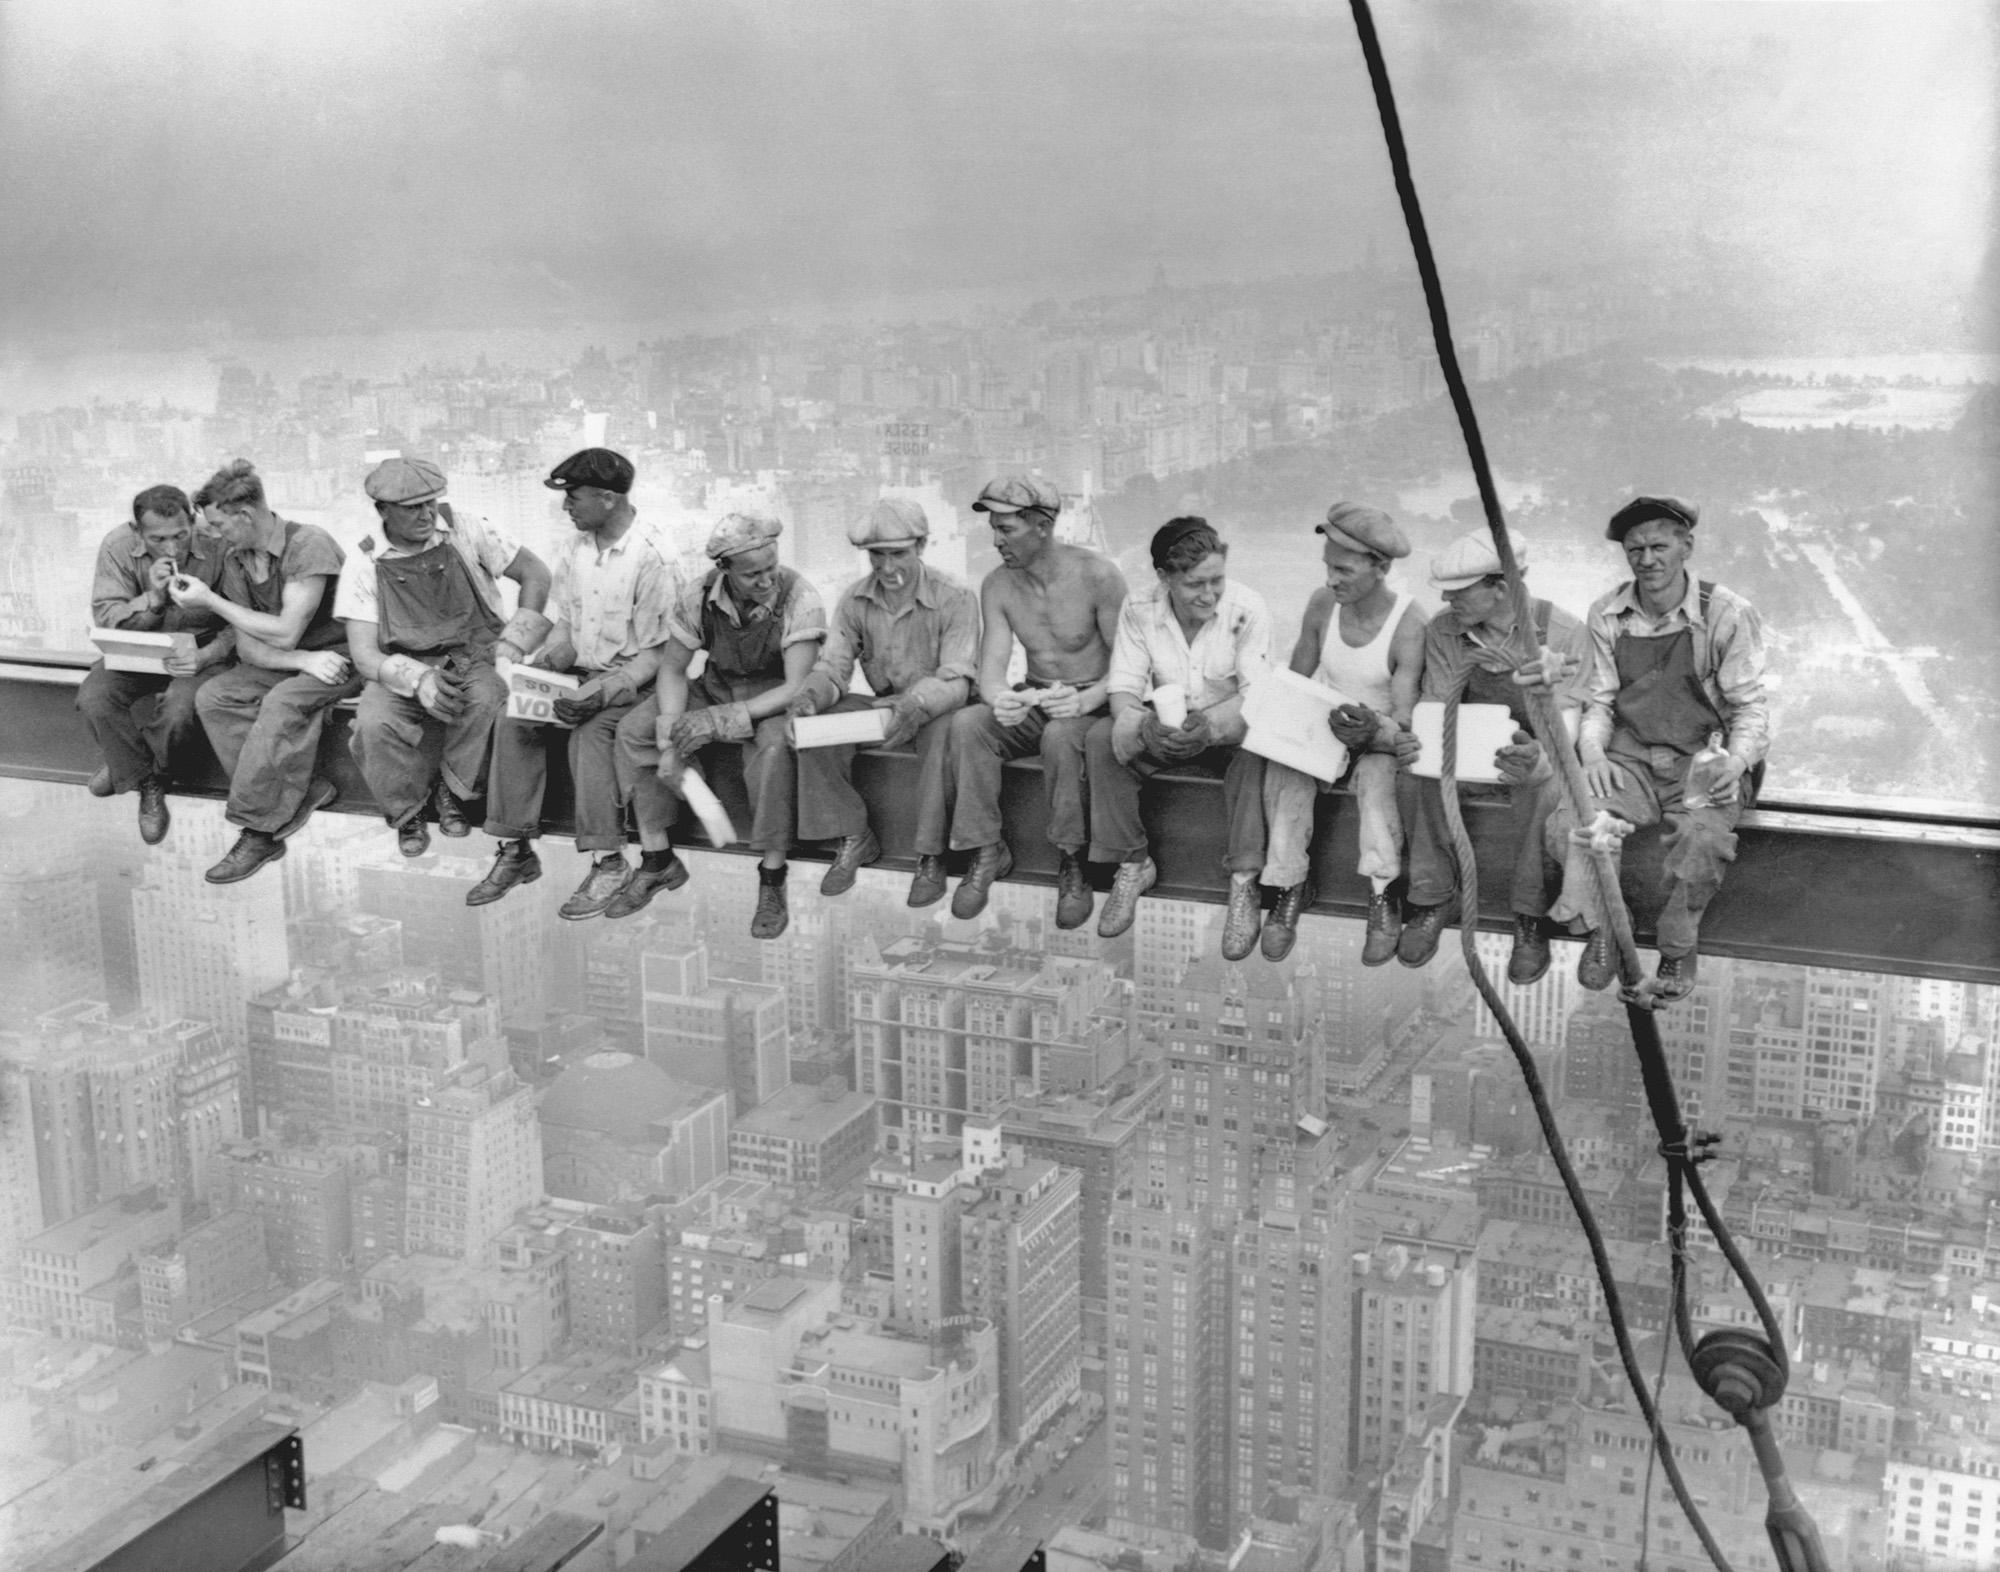 Builders in New York